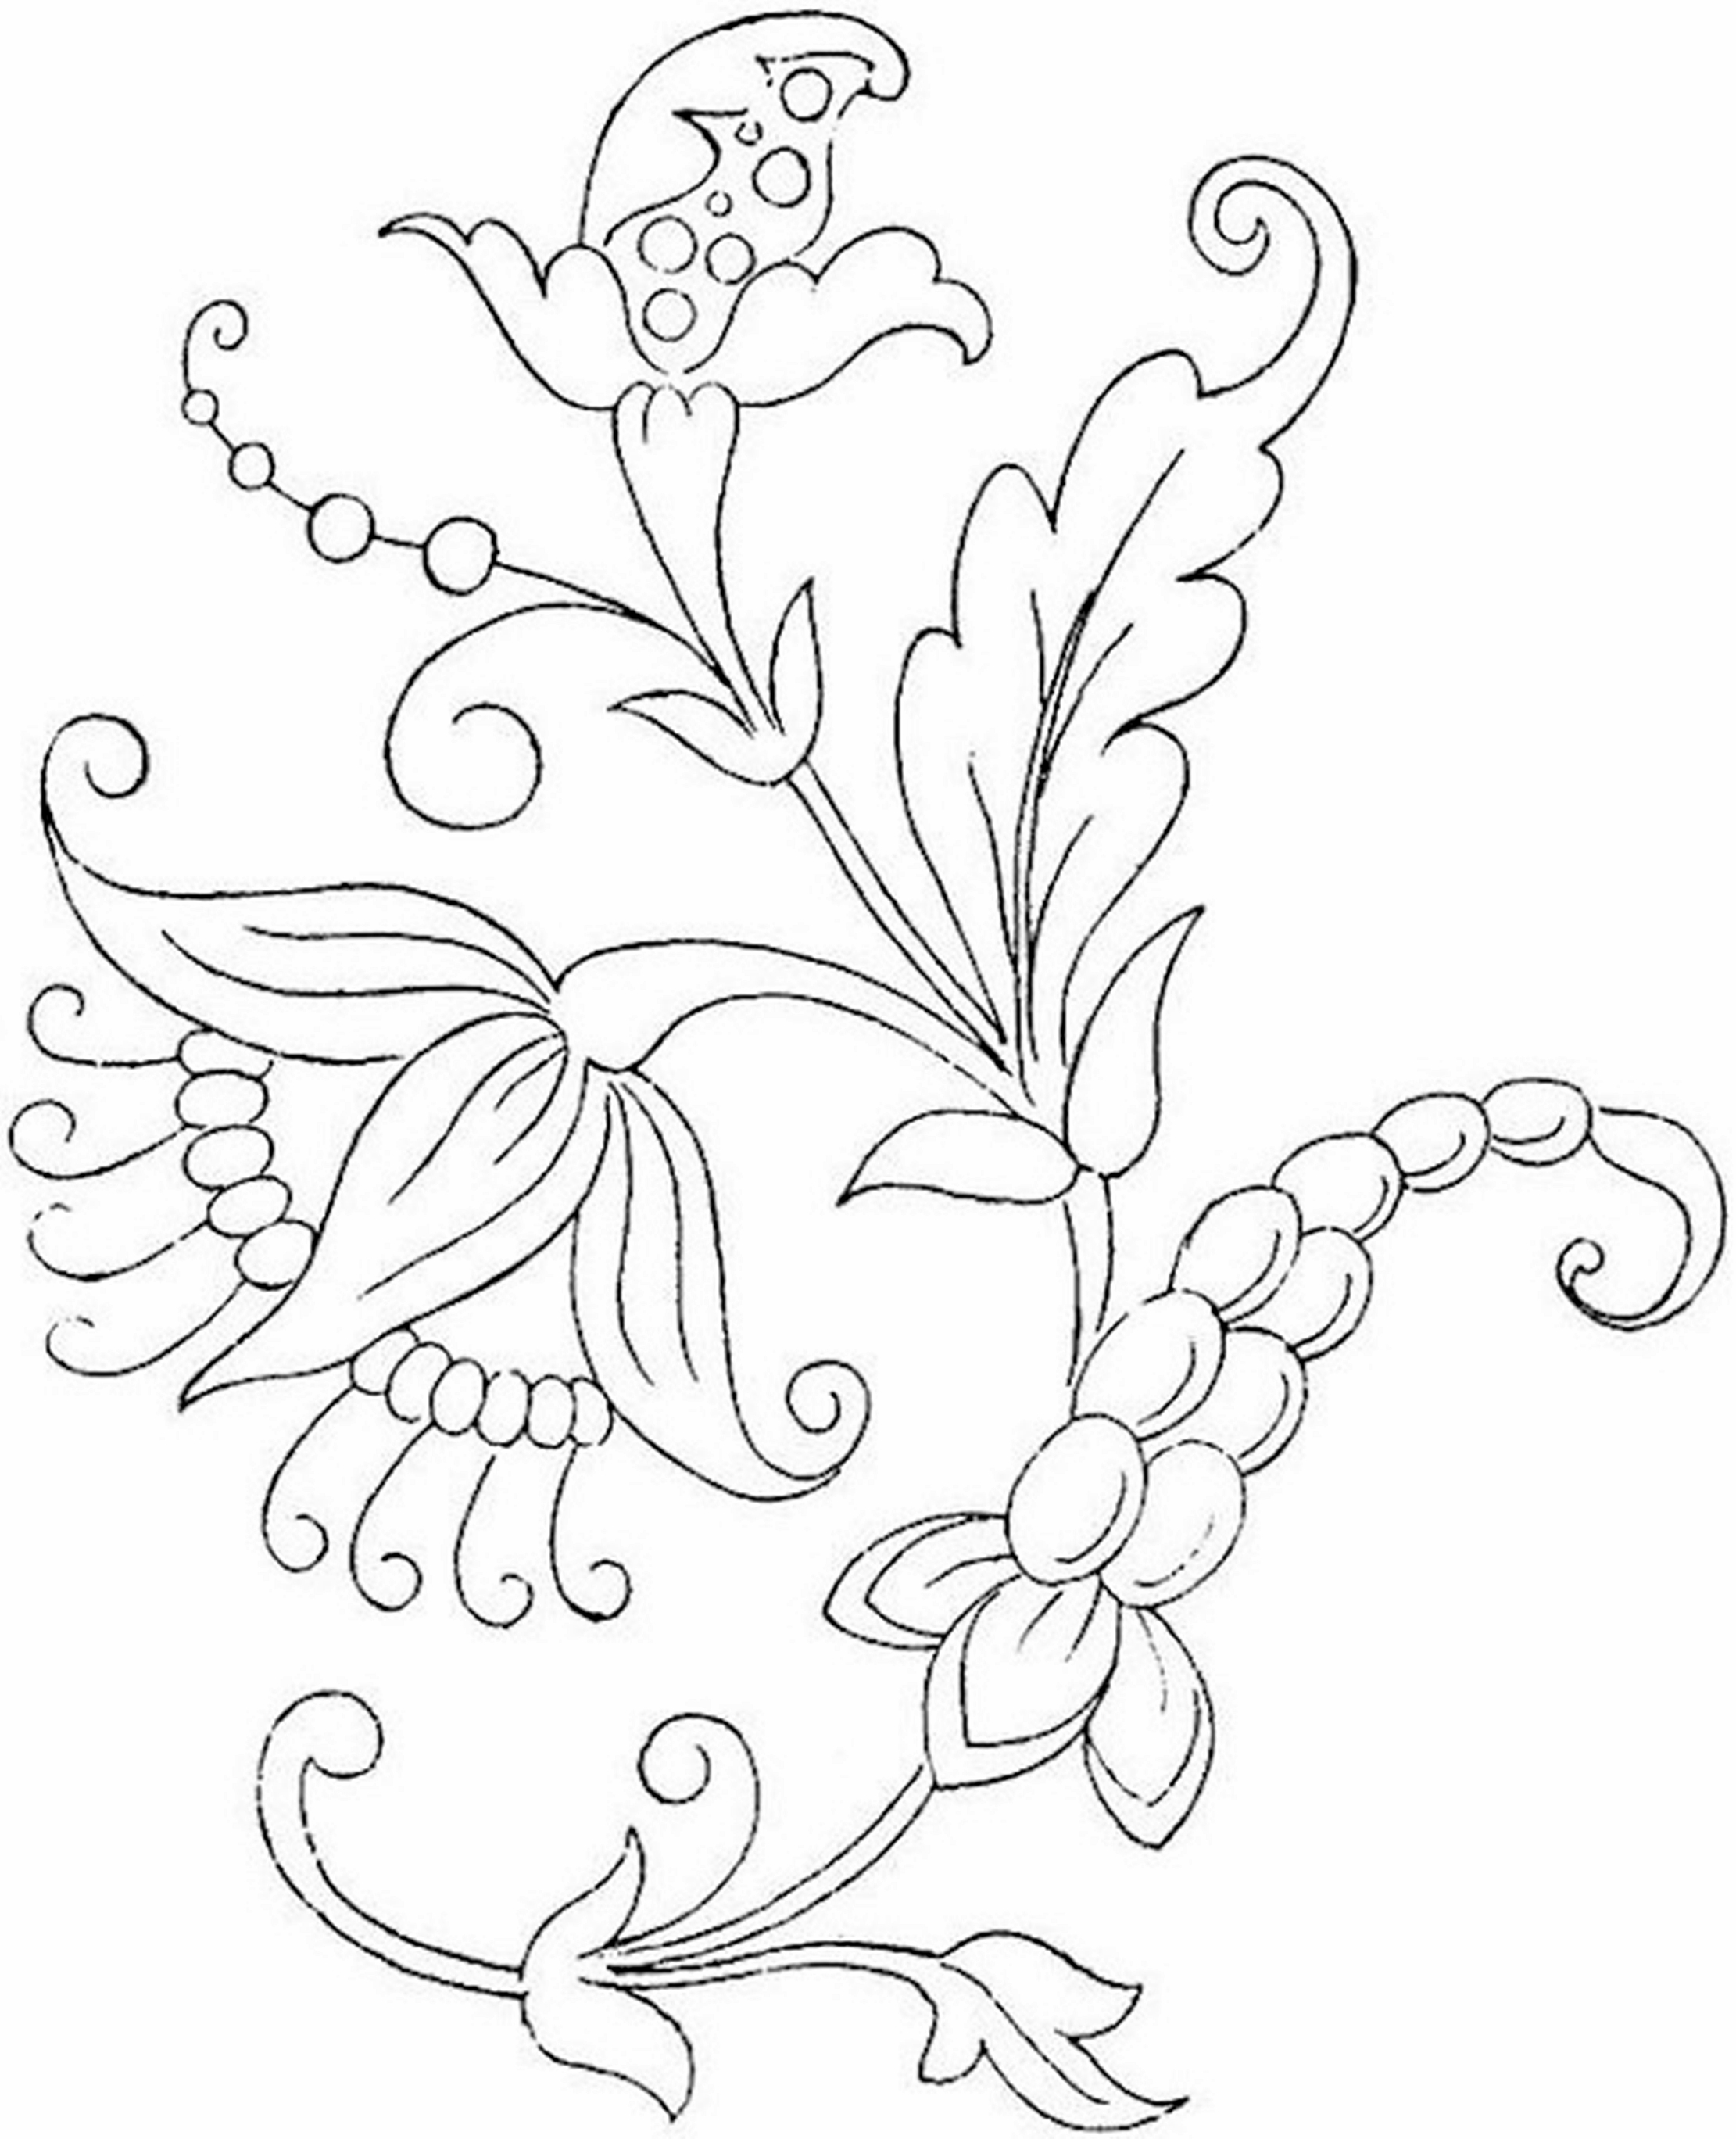 coloring pages flowers printable beautiful printable flowers coloring pages coloring printable flowers pages